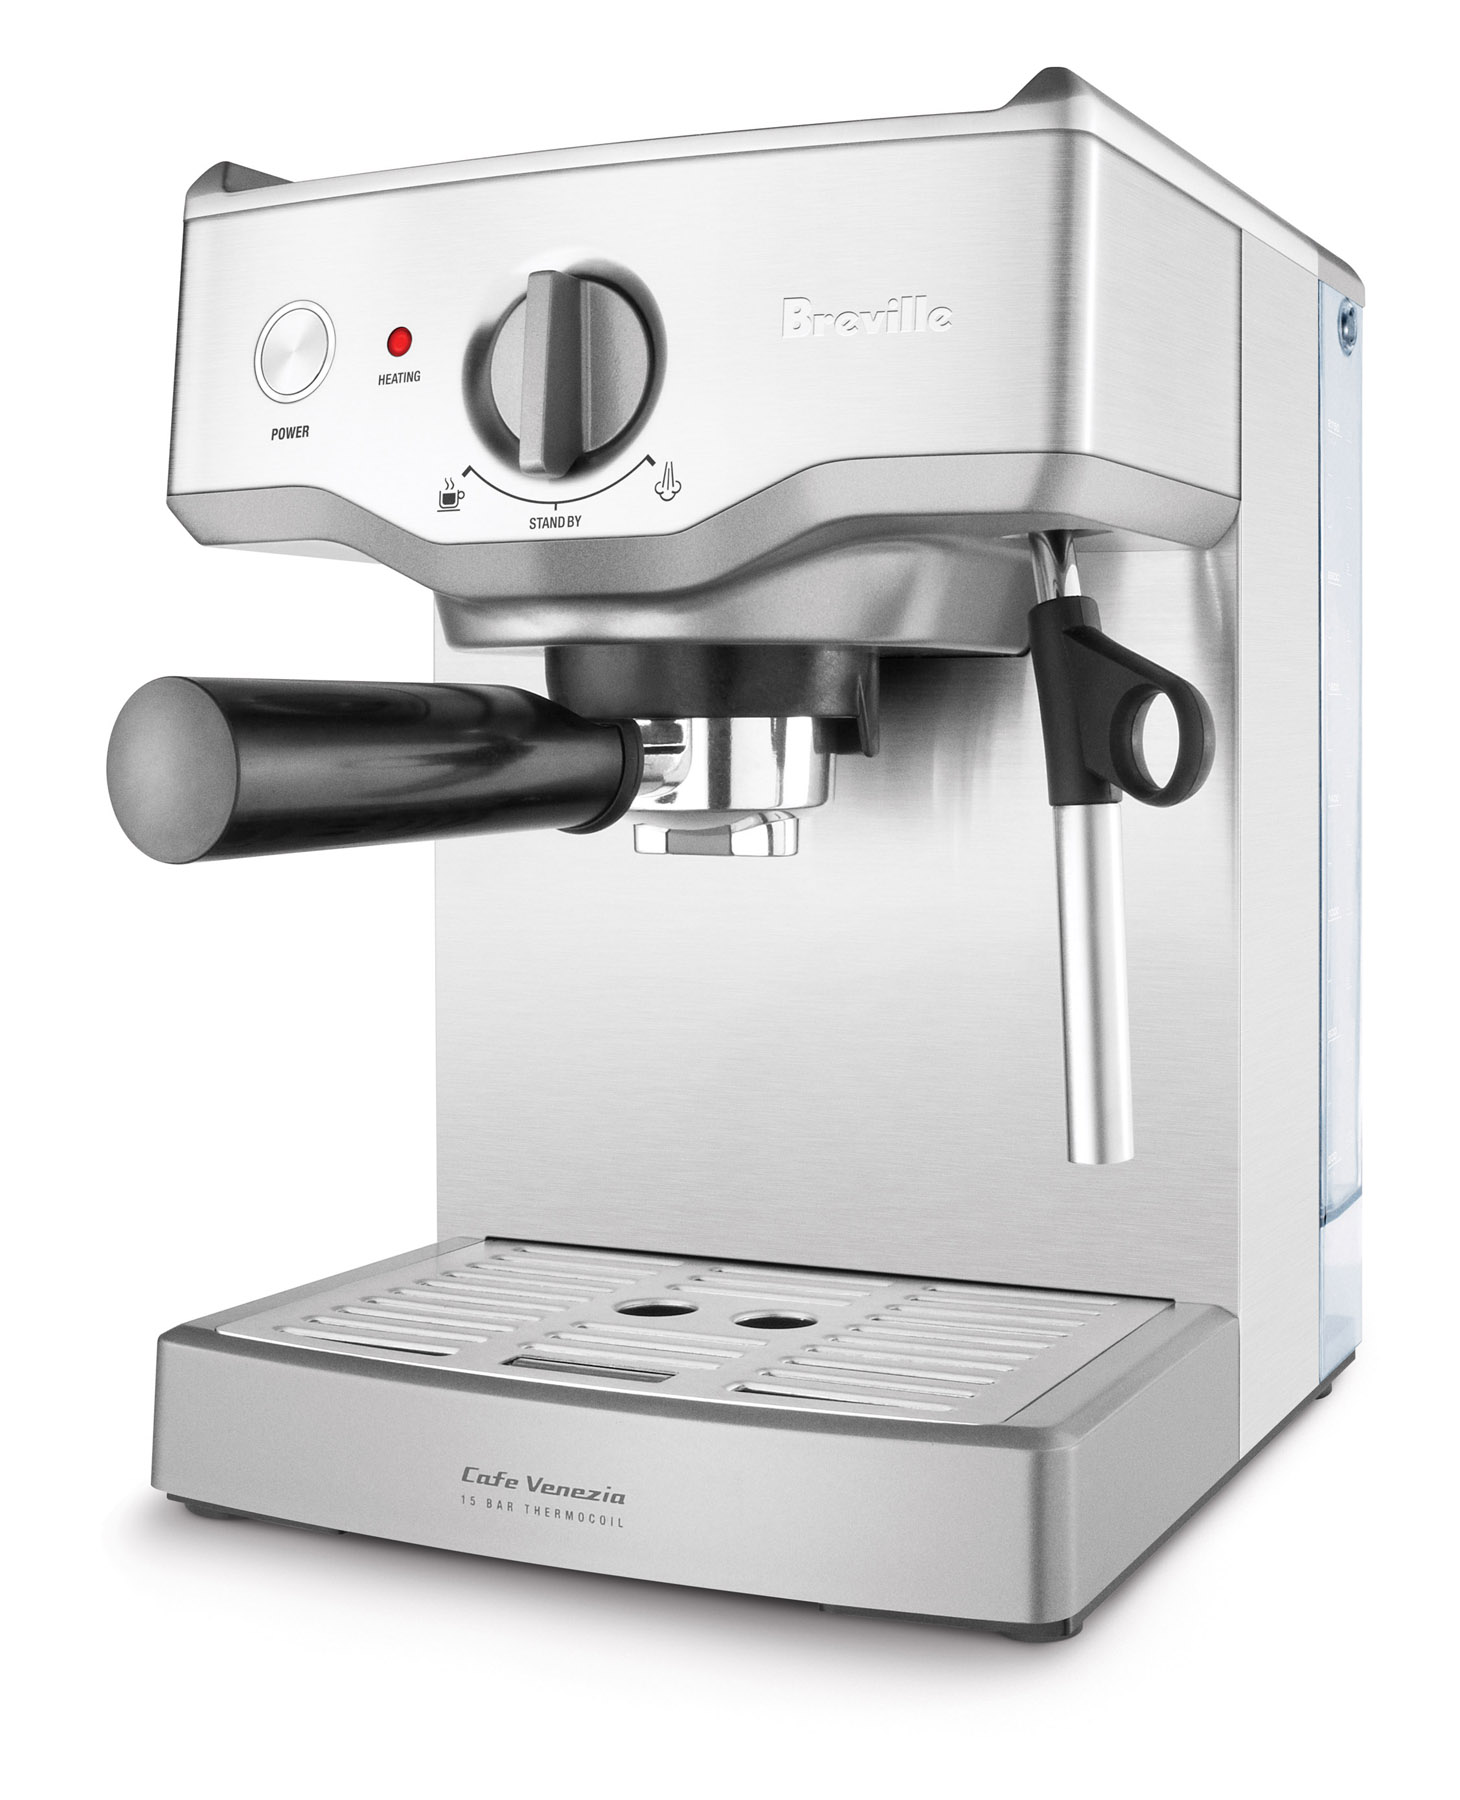 Breville Coffee Maker At The Bay : Review: Breville s Cafe Venezia Espresso Machine Take It Personel-ly